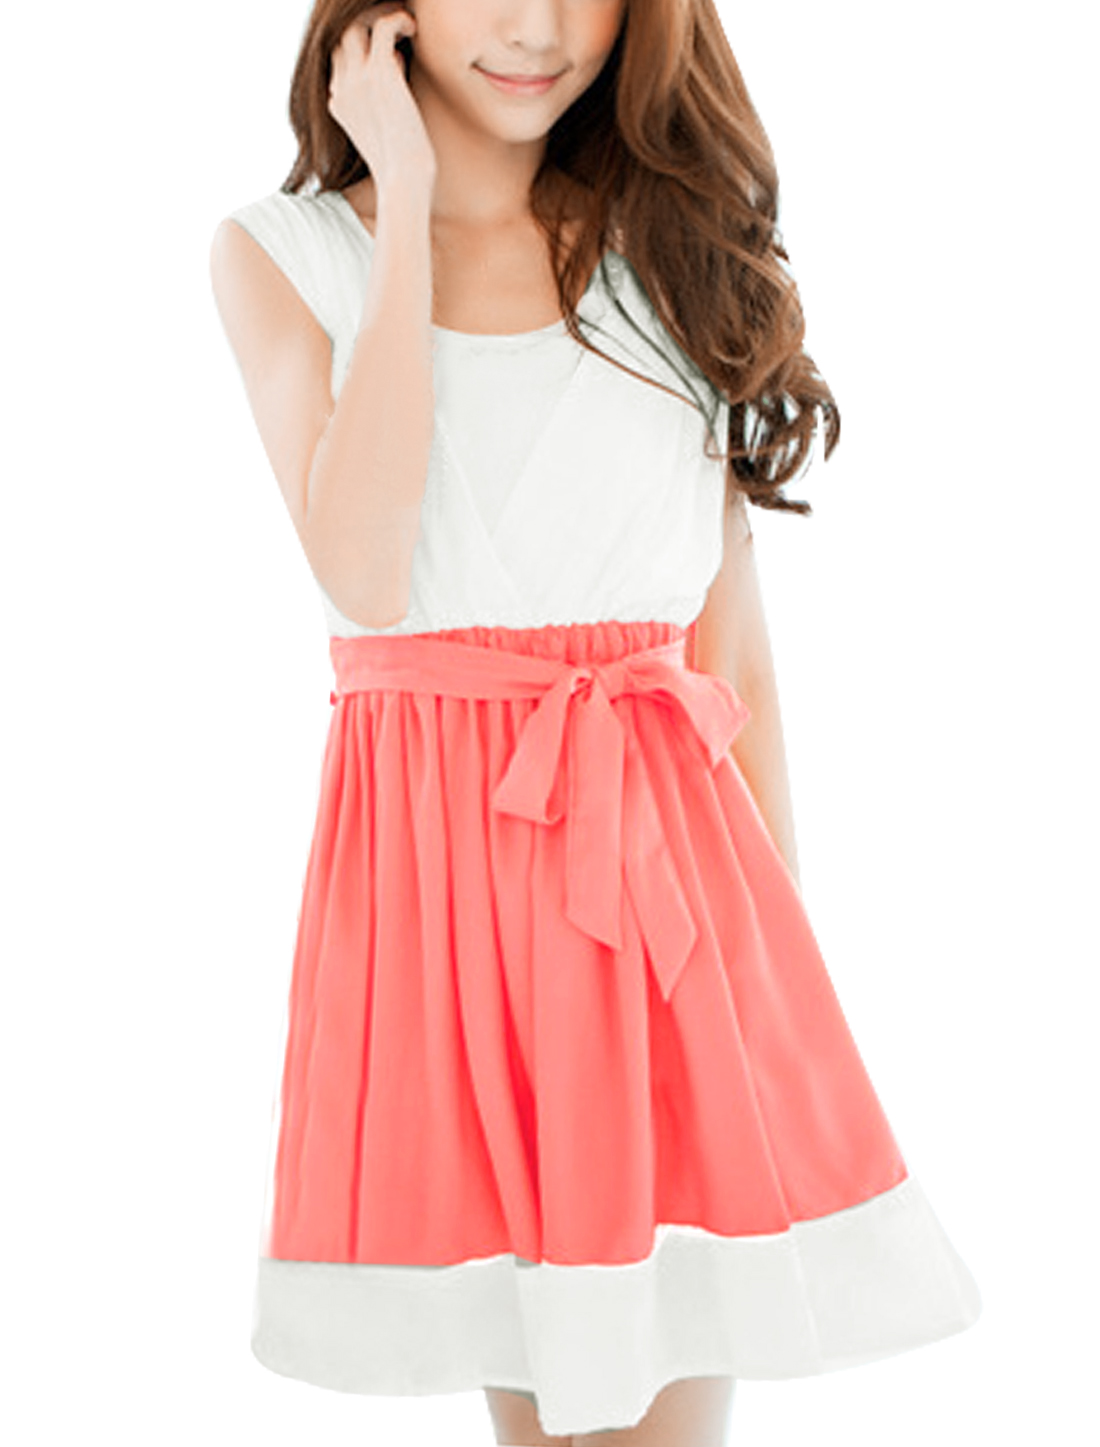 Stylish Contrast Color Watermelon Red White Above Knee Dress w Tube Top for Lady L